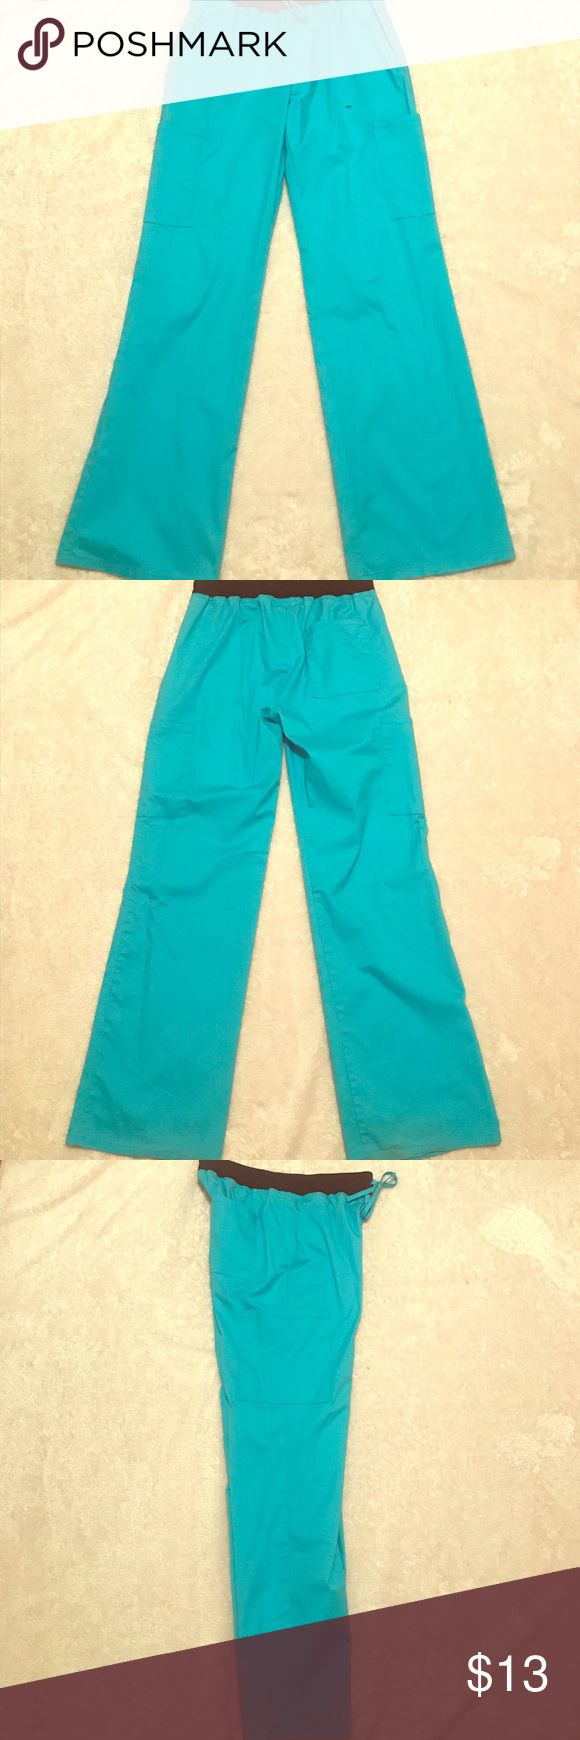 XS Teal Scrub Pants Worn a few times, still has vibrant color! There is a small, black stain (shown in last picture) but scrub tops covered it for most part. Size X-Small fits more like a Small. Pants